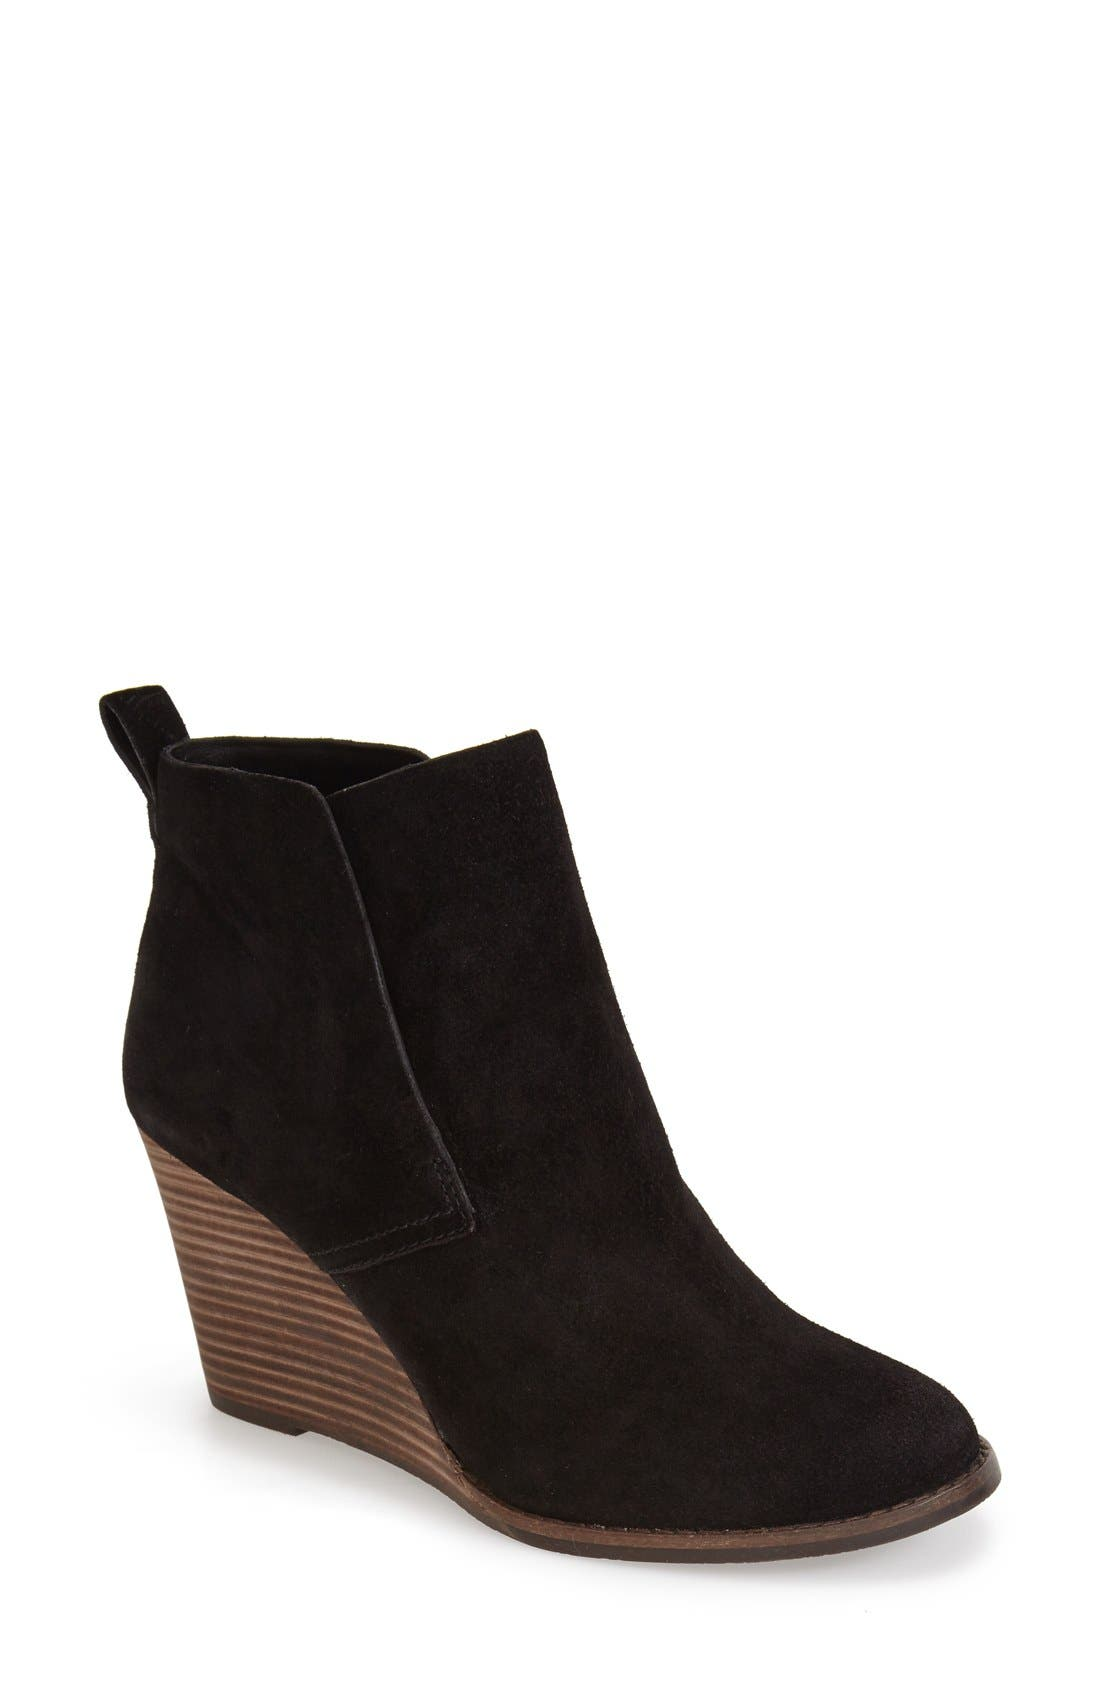 'Yoniana' Wedge Bootie,                         Main,                         color,